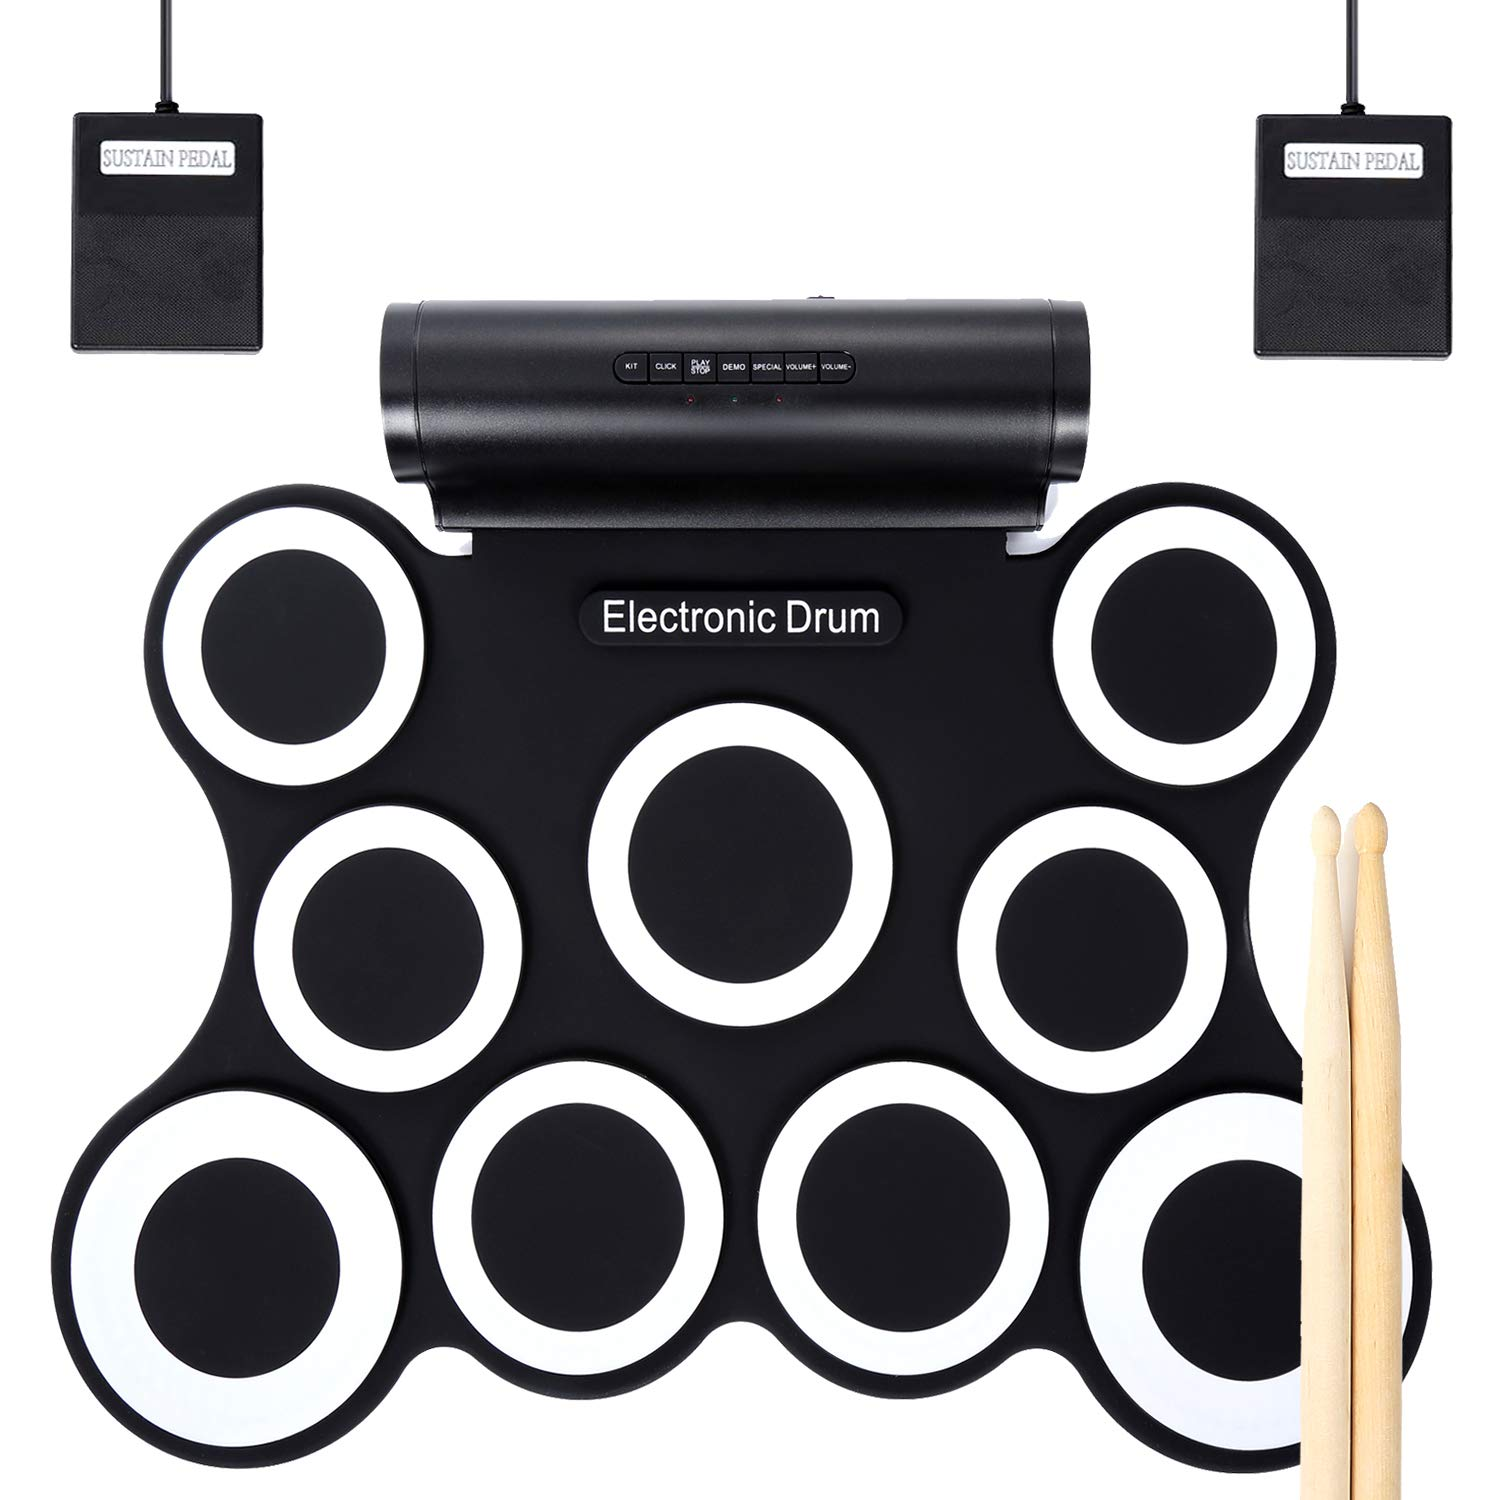 Electronic Drum Set, Christmas Gifts for Kids 9 Pads Roll Up Drum Kit Practice Pad Midi Drum Kit with Headphone Jack, Built in Speaker and Rechargeable Battery, Drum Stick, Foot Pedals. by Moongo Tool